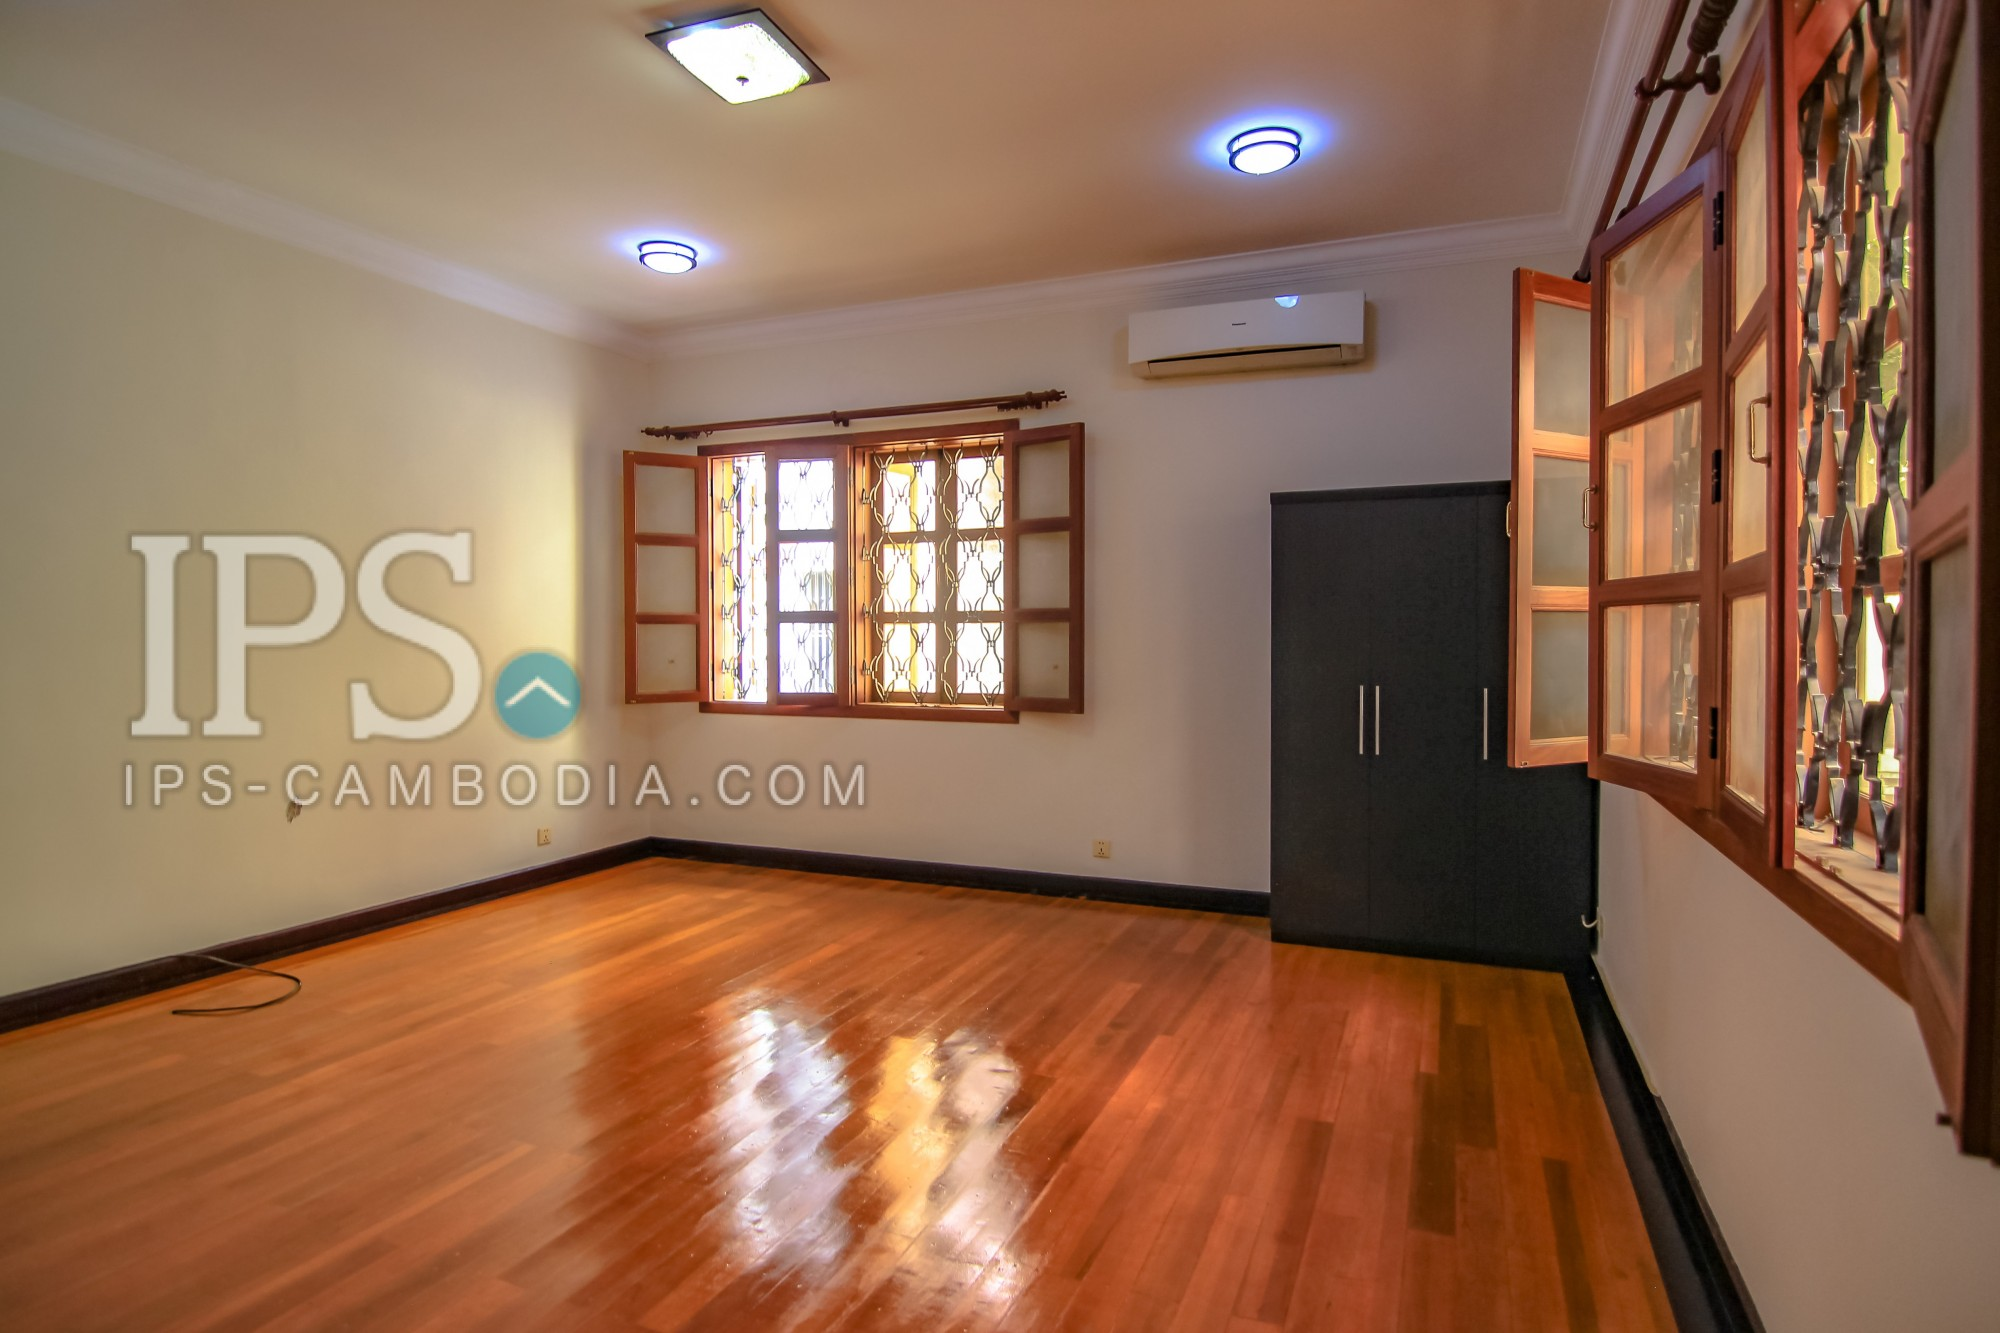 9 Bedrooms Commercial Villa For Rent - Tonle Bassac, Phnom Penh